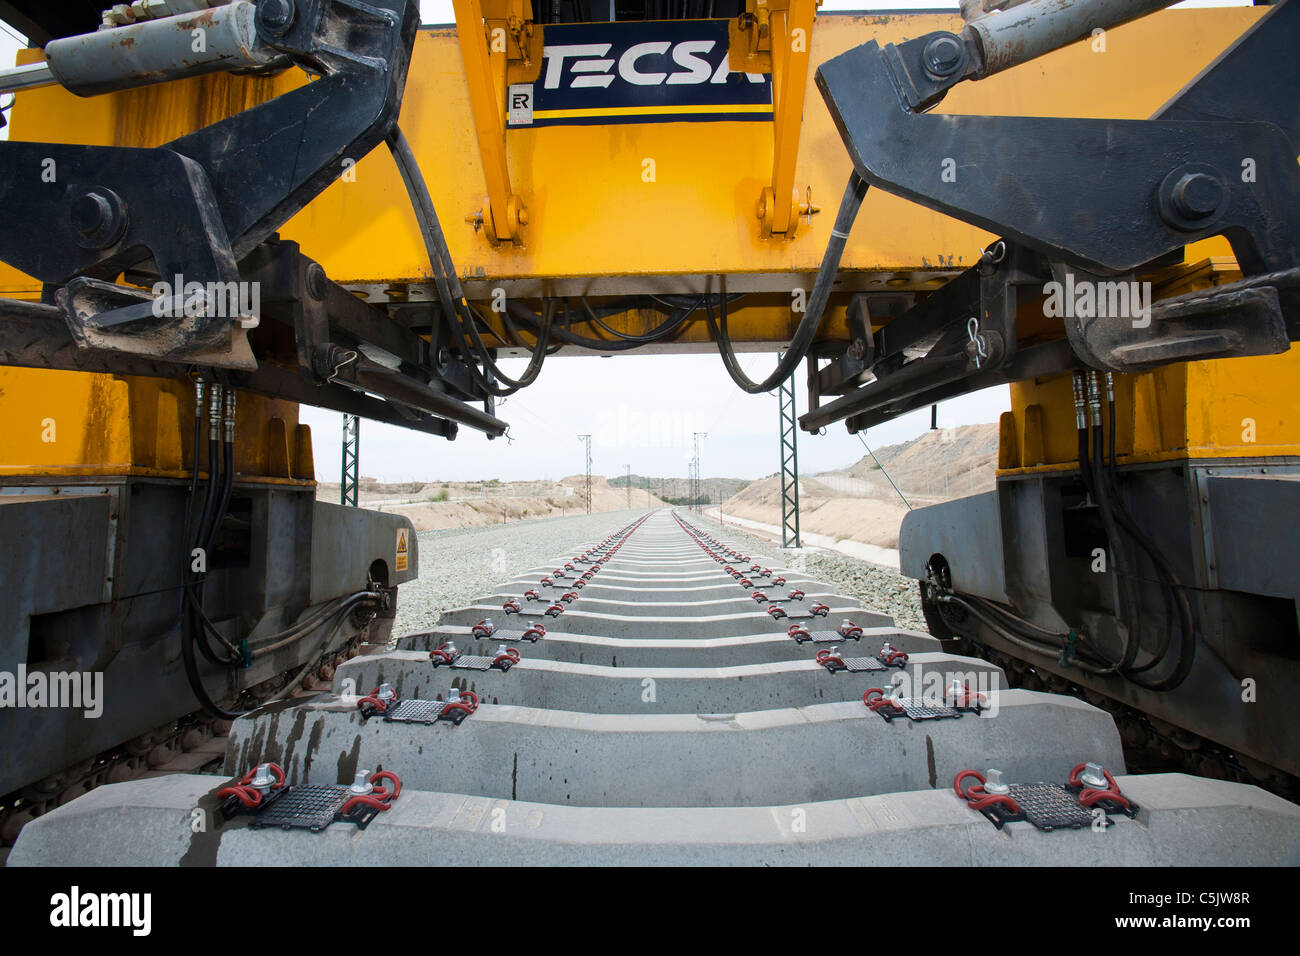 A new electrified railway line being built into Alicante, Mursia, Spain. - Stock Image